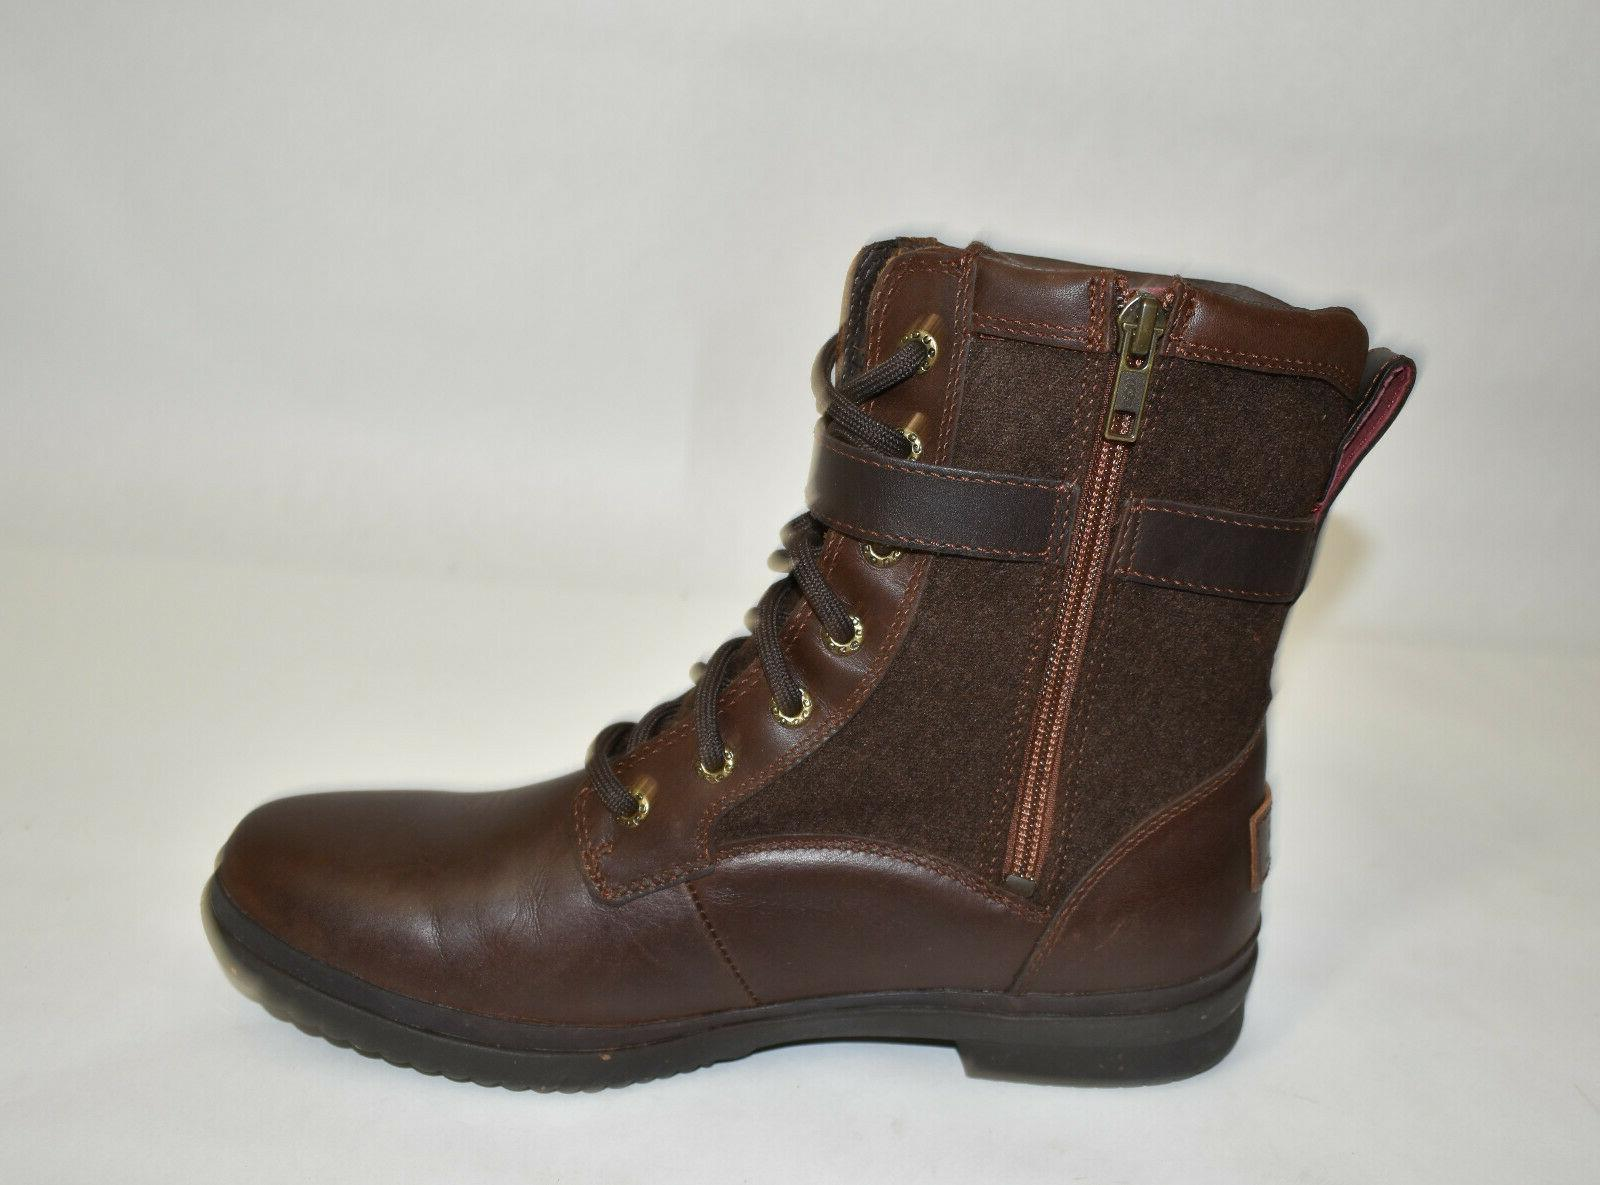 New! Ugg Kesey Boot Leather 9